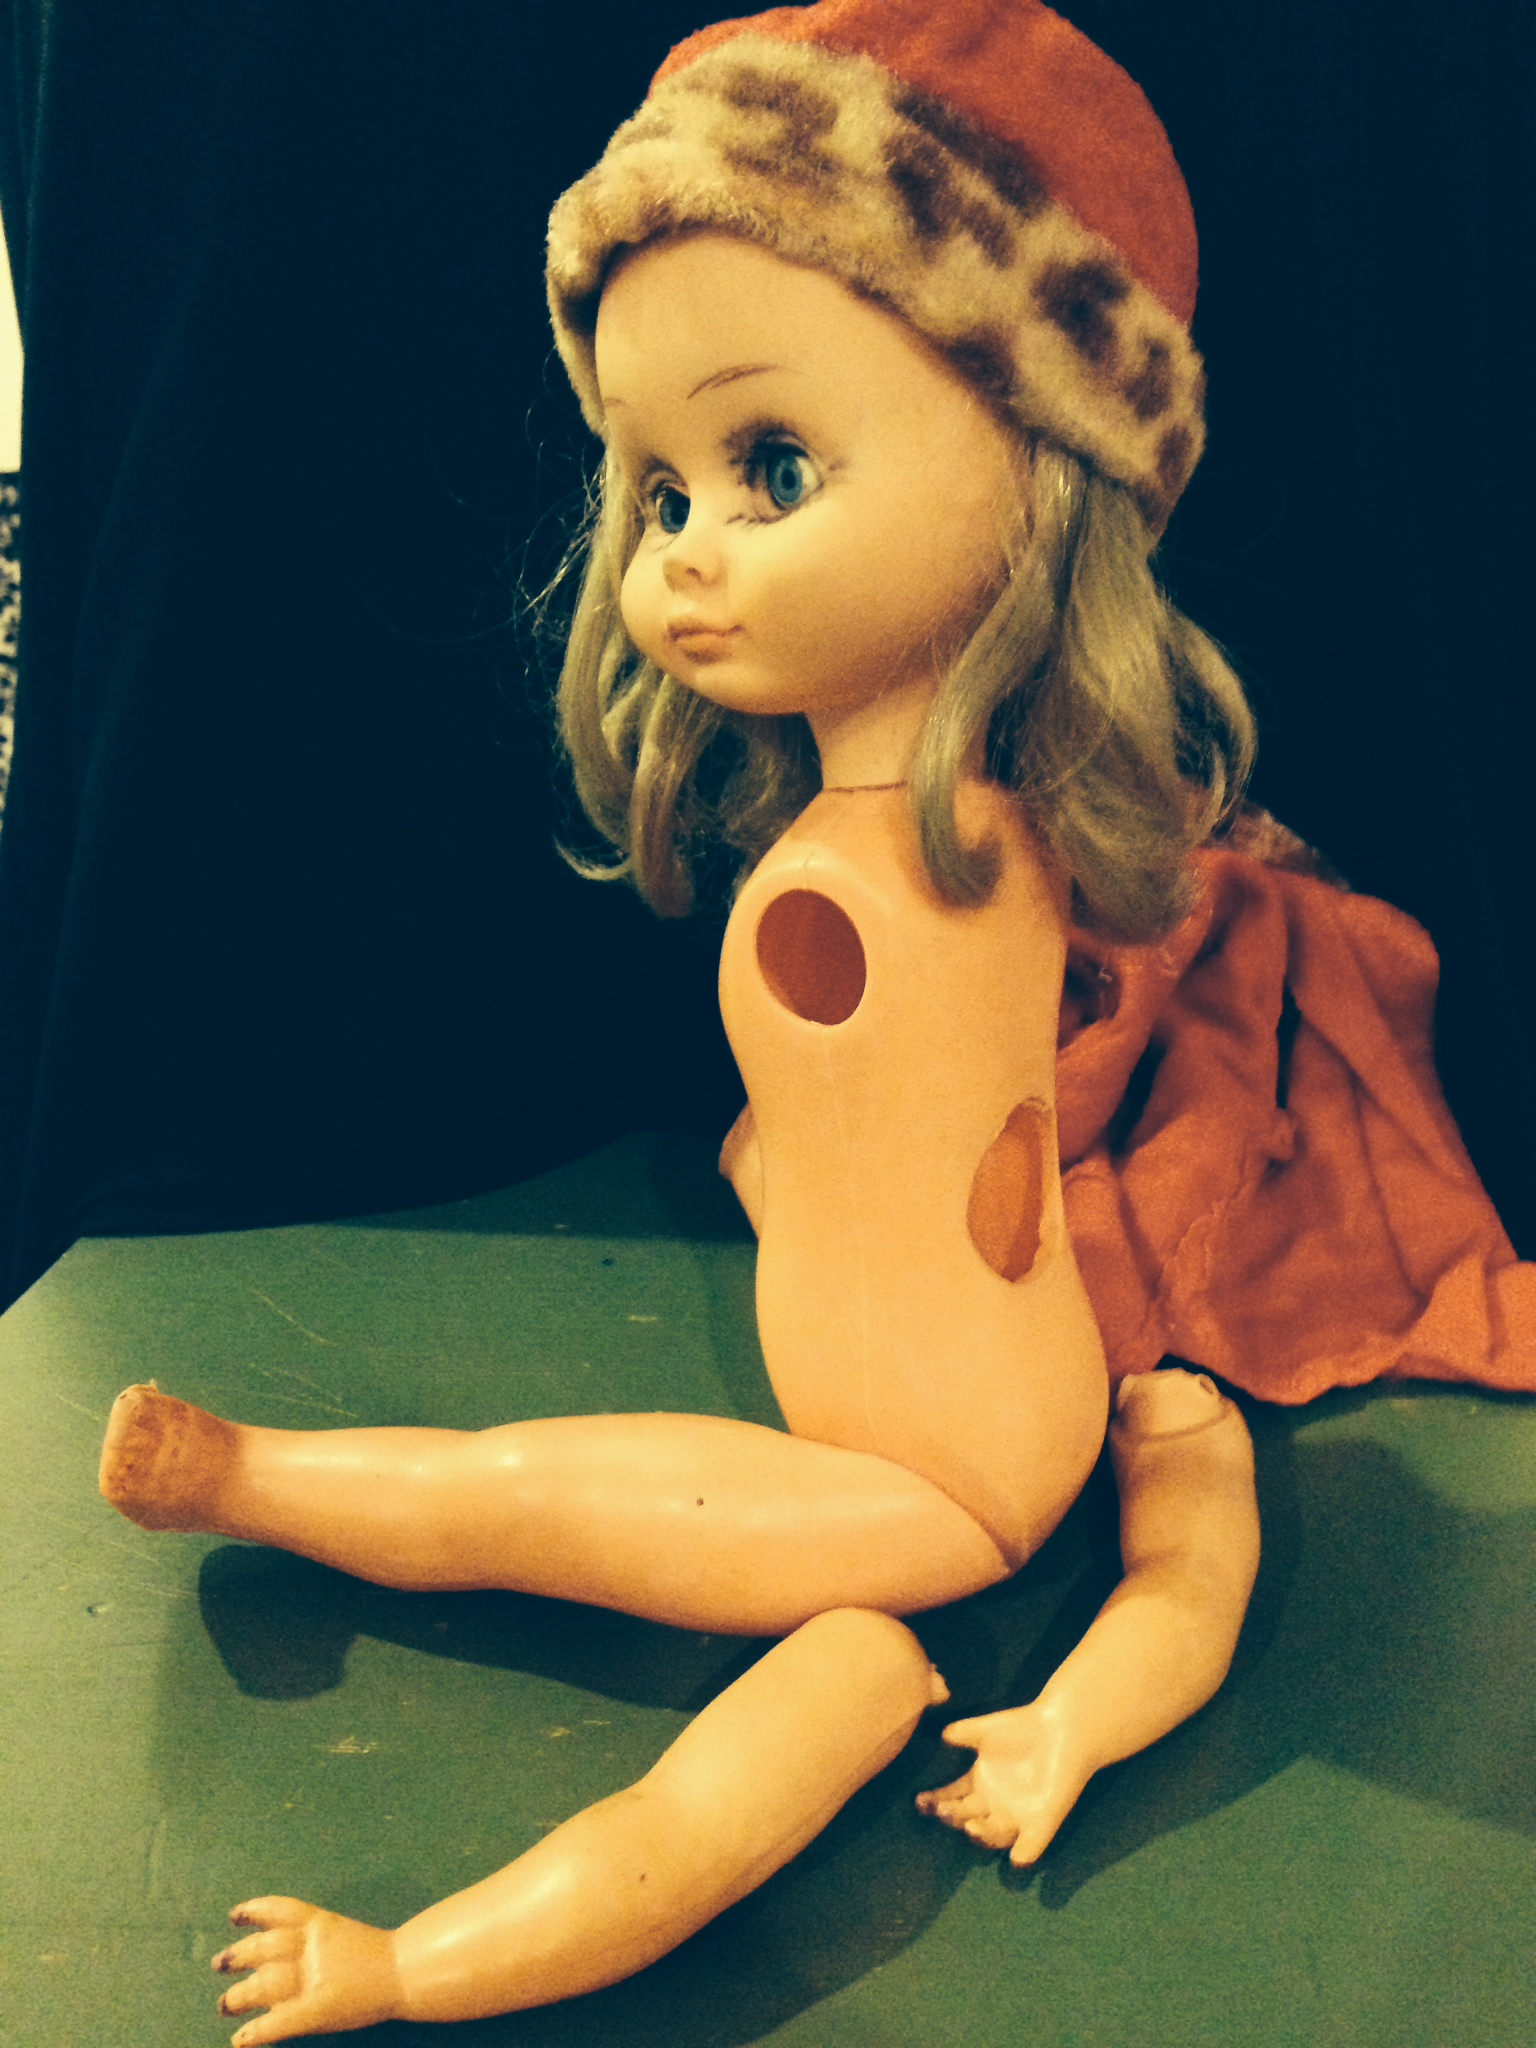 Cynthia's childhood doll, ripped apart by an Iraqi police officer searching for a spying device